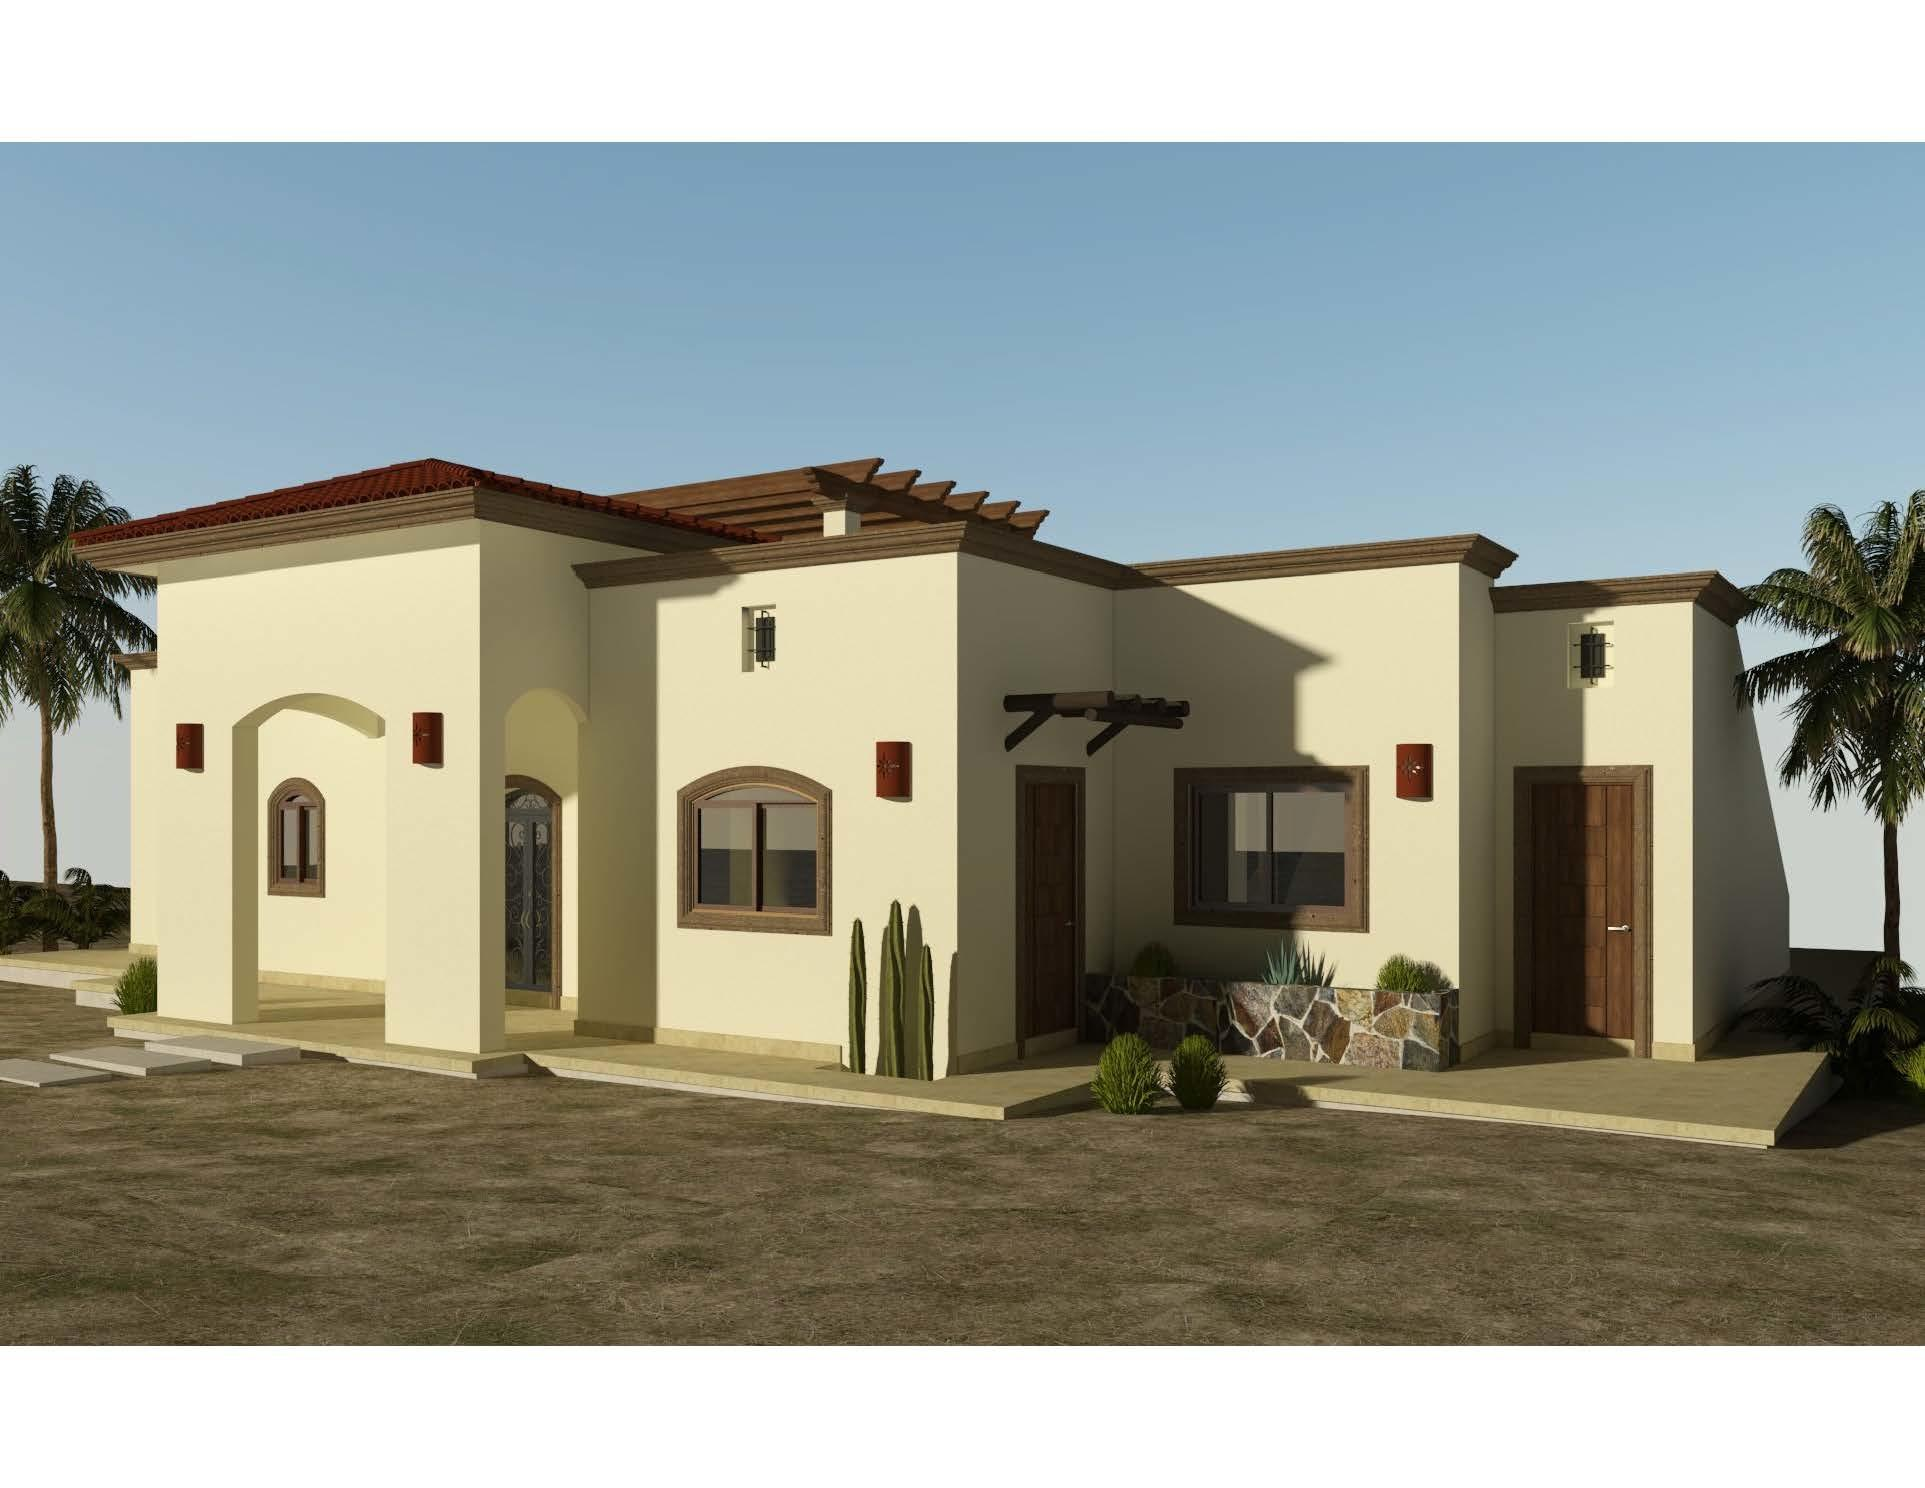 Casa Mogote is the largest of 6 models to be built in the new, master-planned community of Villas del Centenario, Casa Mogote is a 3BR/2.5BA home with 200m2/2,153ft2 of interior living space opening onto a huge 85m2/915ft2 covered entertaining area with tiled roof. The massive stone front entry welcomes visitors into an open living/kitchen/dining area featuring 10' ceilings, a large built-in pantry, and dual sliding glass doors that open onto the patio. Custom-built hardwood cabinetry, oversized tile, granite countertops and stainless appliances are included. The master suite has dual vanities in the bath, marble tiled shower and walk-in closet. The house also includes 2 guest BRs, a guest bath, a large laundry, and A/C units and ceiling fans in every room. The listing price includes the base home price plus a lot premium of $39,900. Lot premiums range from $39,900 - $79,900, so the final price of the home will vary based on the low selected. Also, some lots may require additional cost for retaining walls. The base price of the home includes all interior and exterior covered areas but extra terrace area is an upgrade. price does not include other options or upgrades.  Villas del Centenario is a private, gated community of homes located in the hills of El Centenario overlooking the Sea of Cortez with stunning ocean views. Now taking lot reservations with 50% deposit towards the lot premium.  The first homes to be built are expected to break ground in Fall 2021 (Phase I and II only), with completion averaging 9 months later. Please consult the listing agency for the full lot price list.